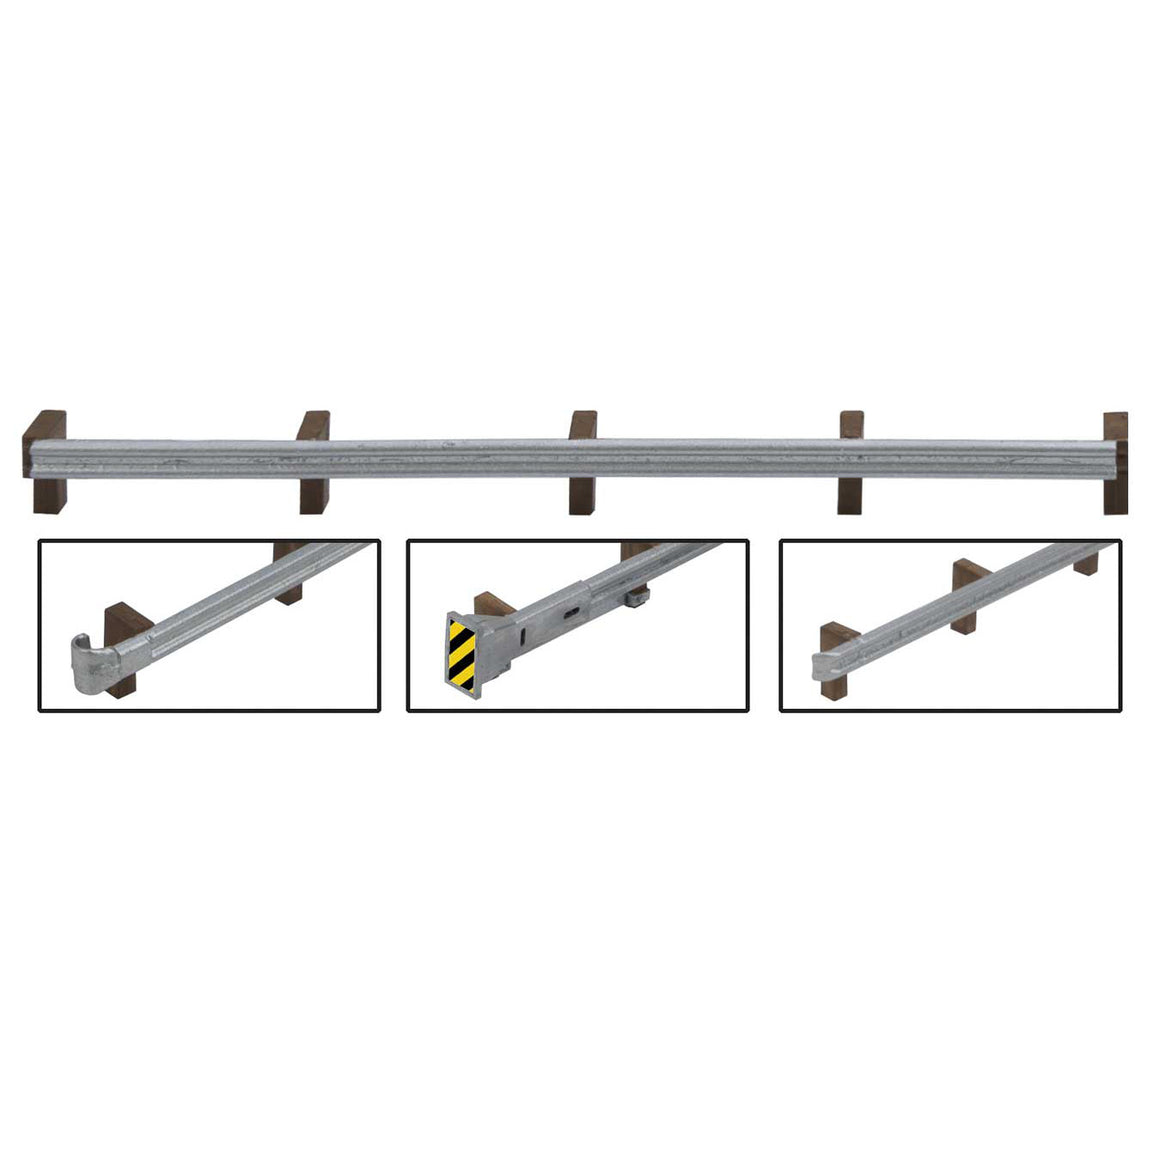 HO Scale: Roadway Guardrails - Kit